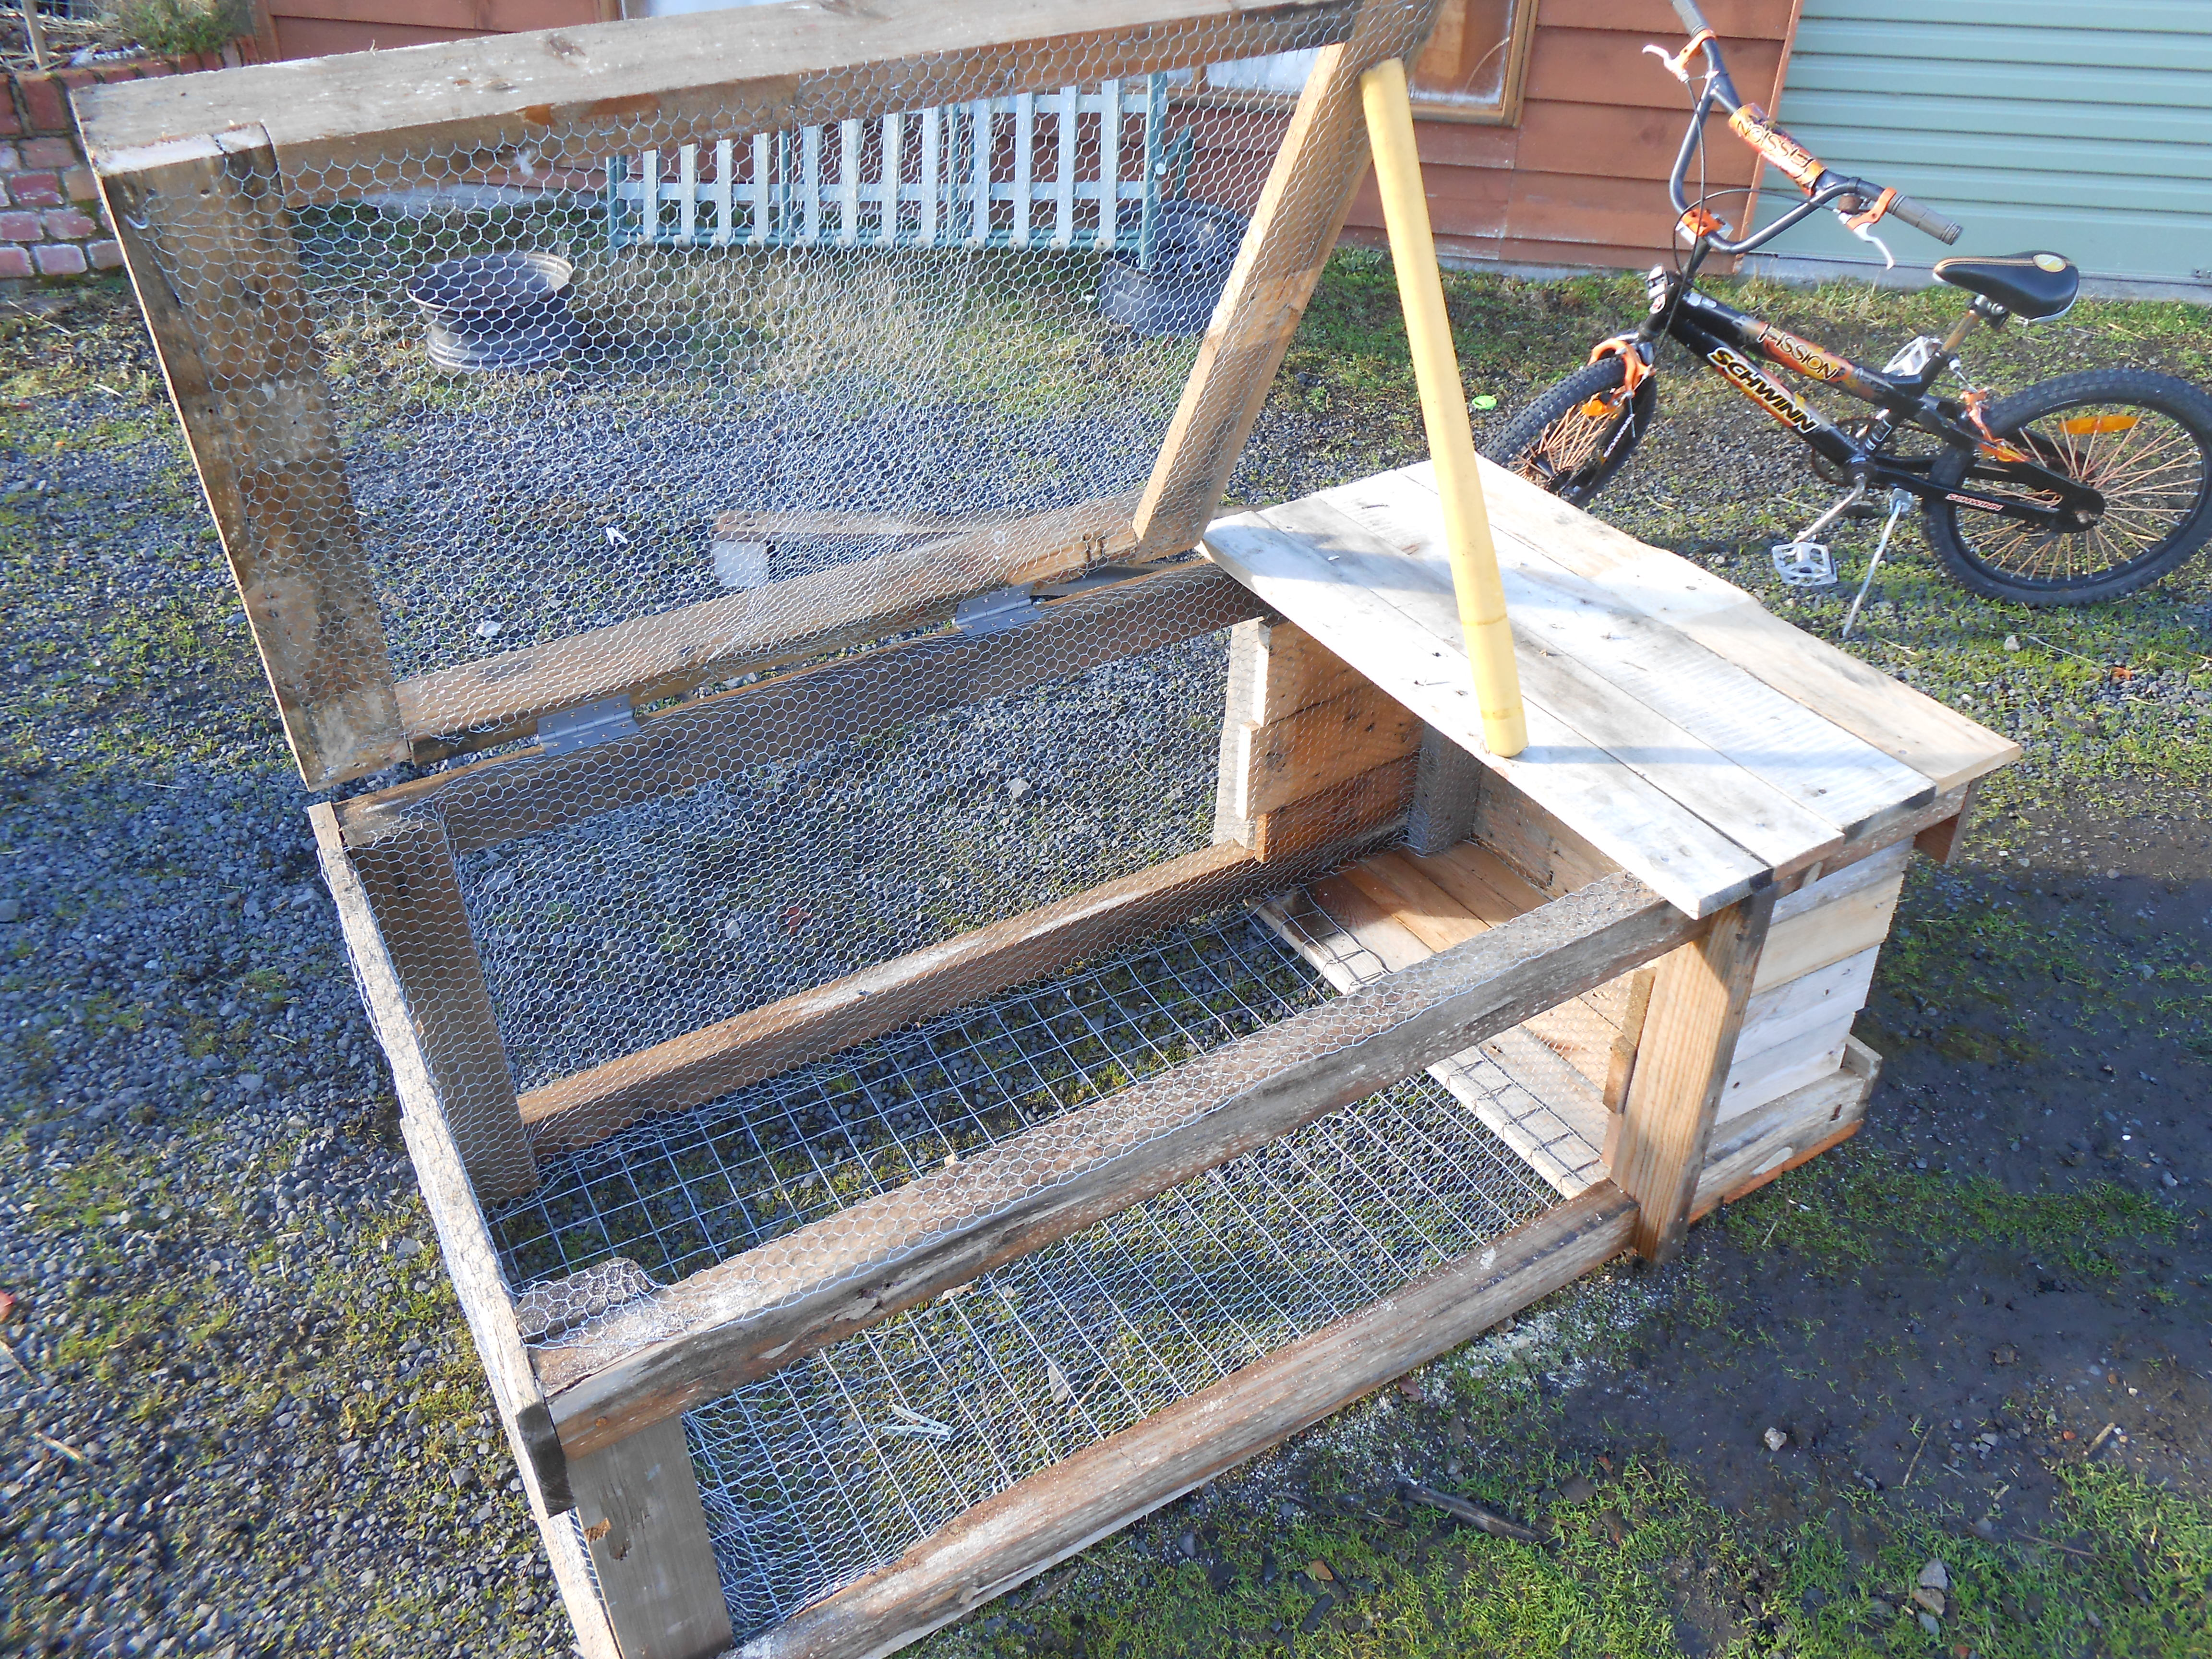 Building a small rabbit hutch